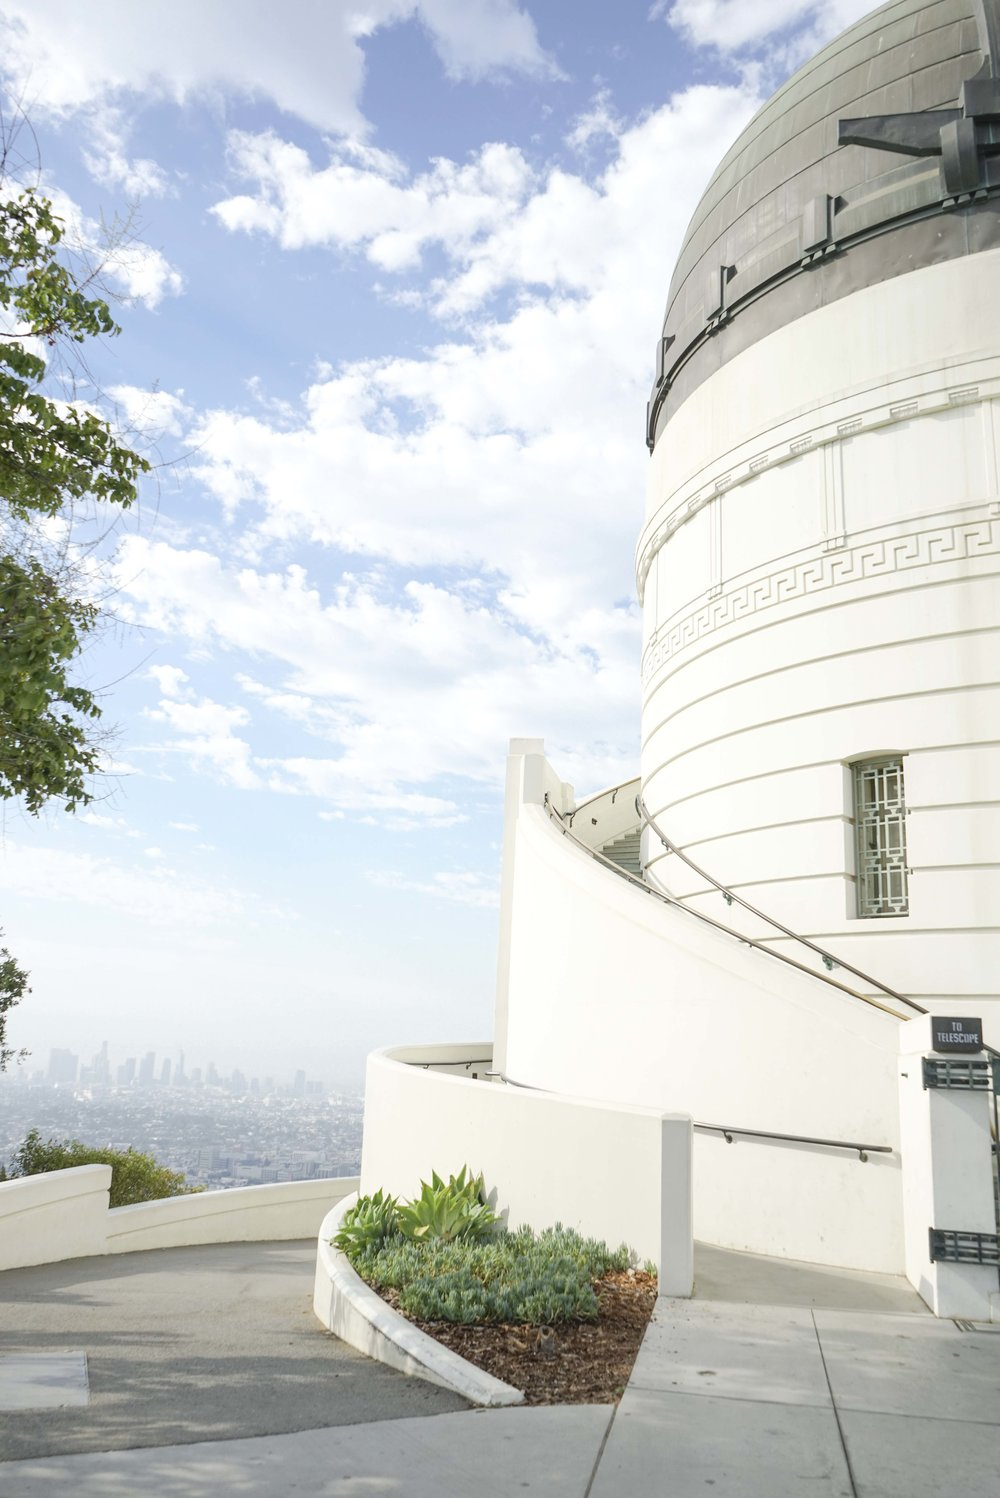 Griffith_Observatory_004.jpg